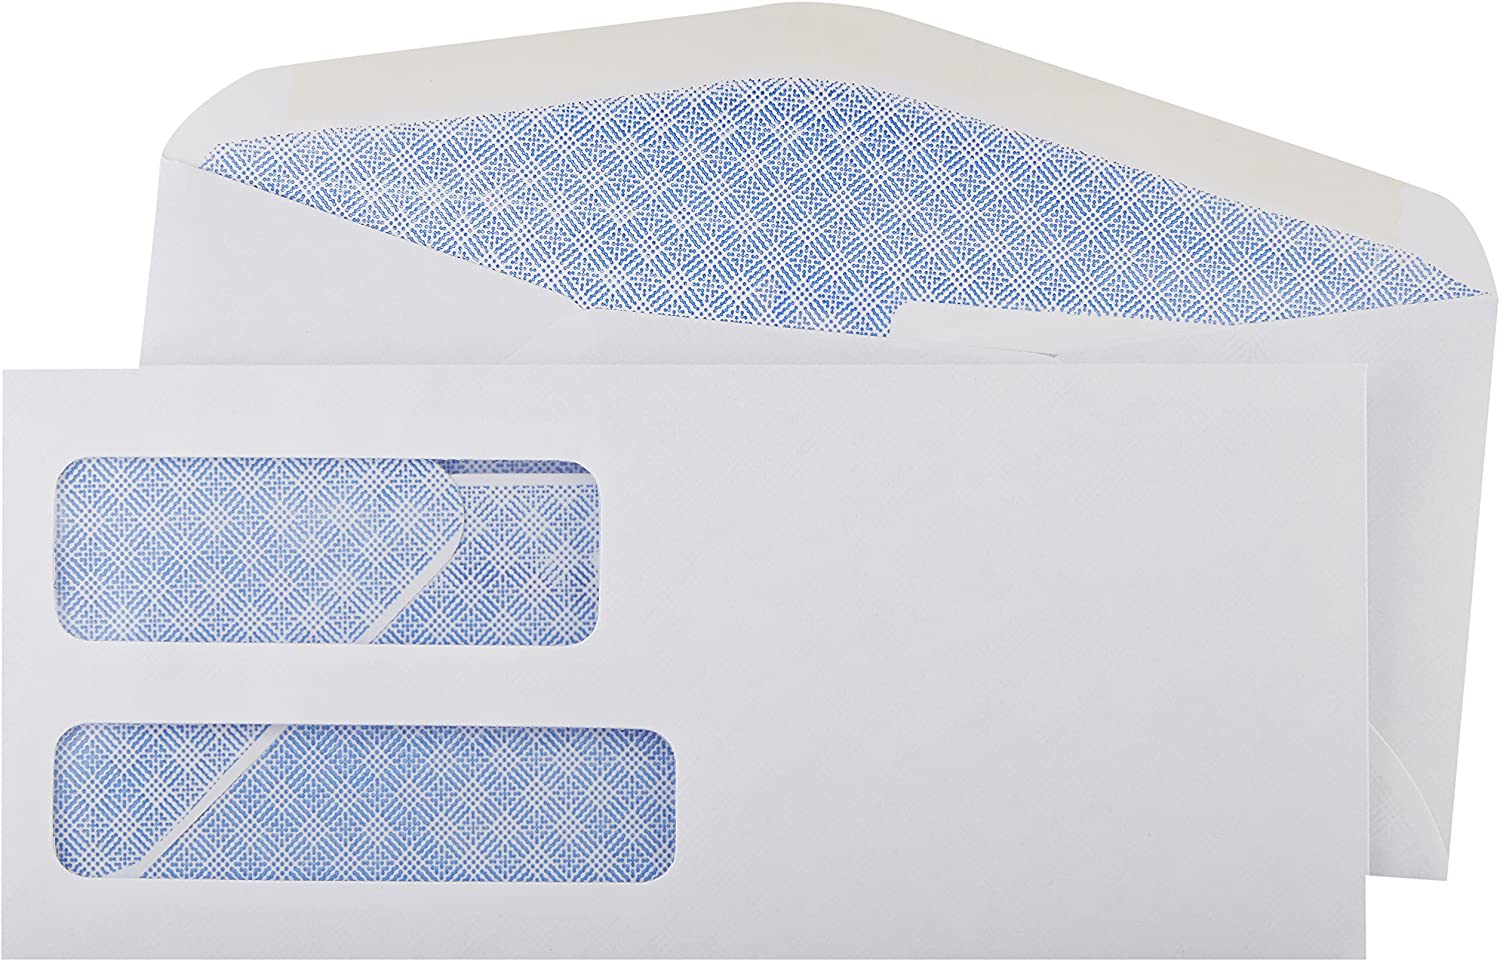 Basics #9 Double Window Security Tinted Envelopes, White, 500 ct : Office Products